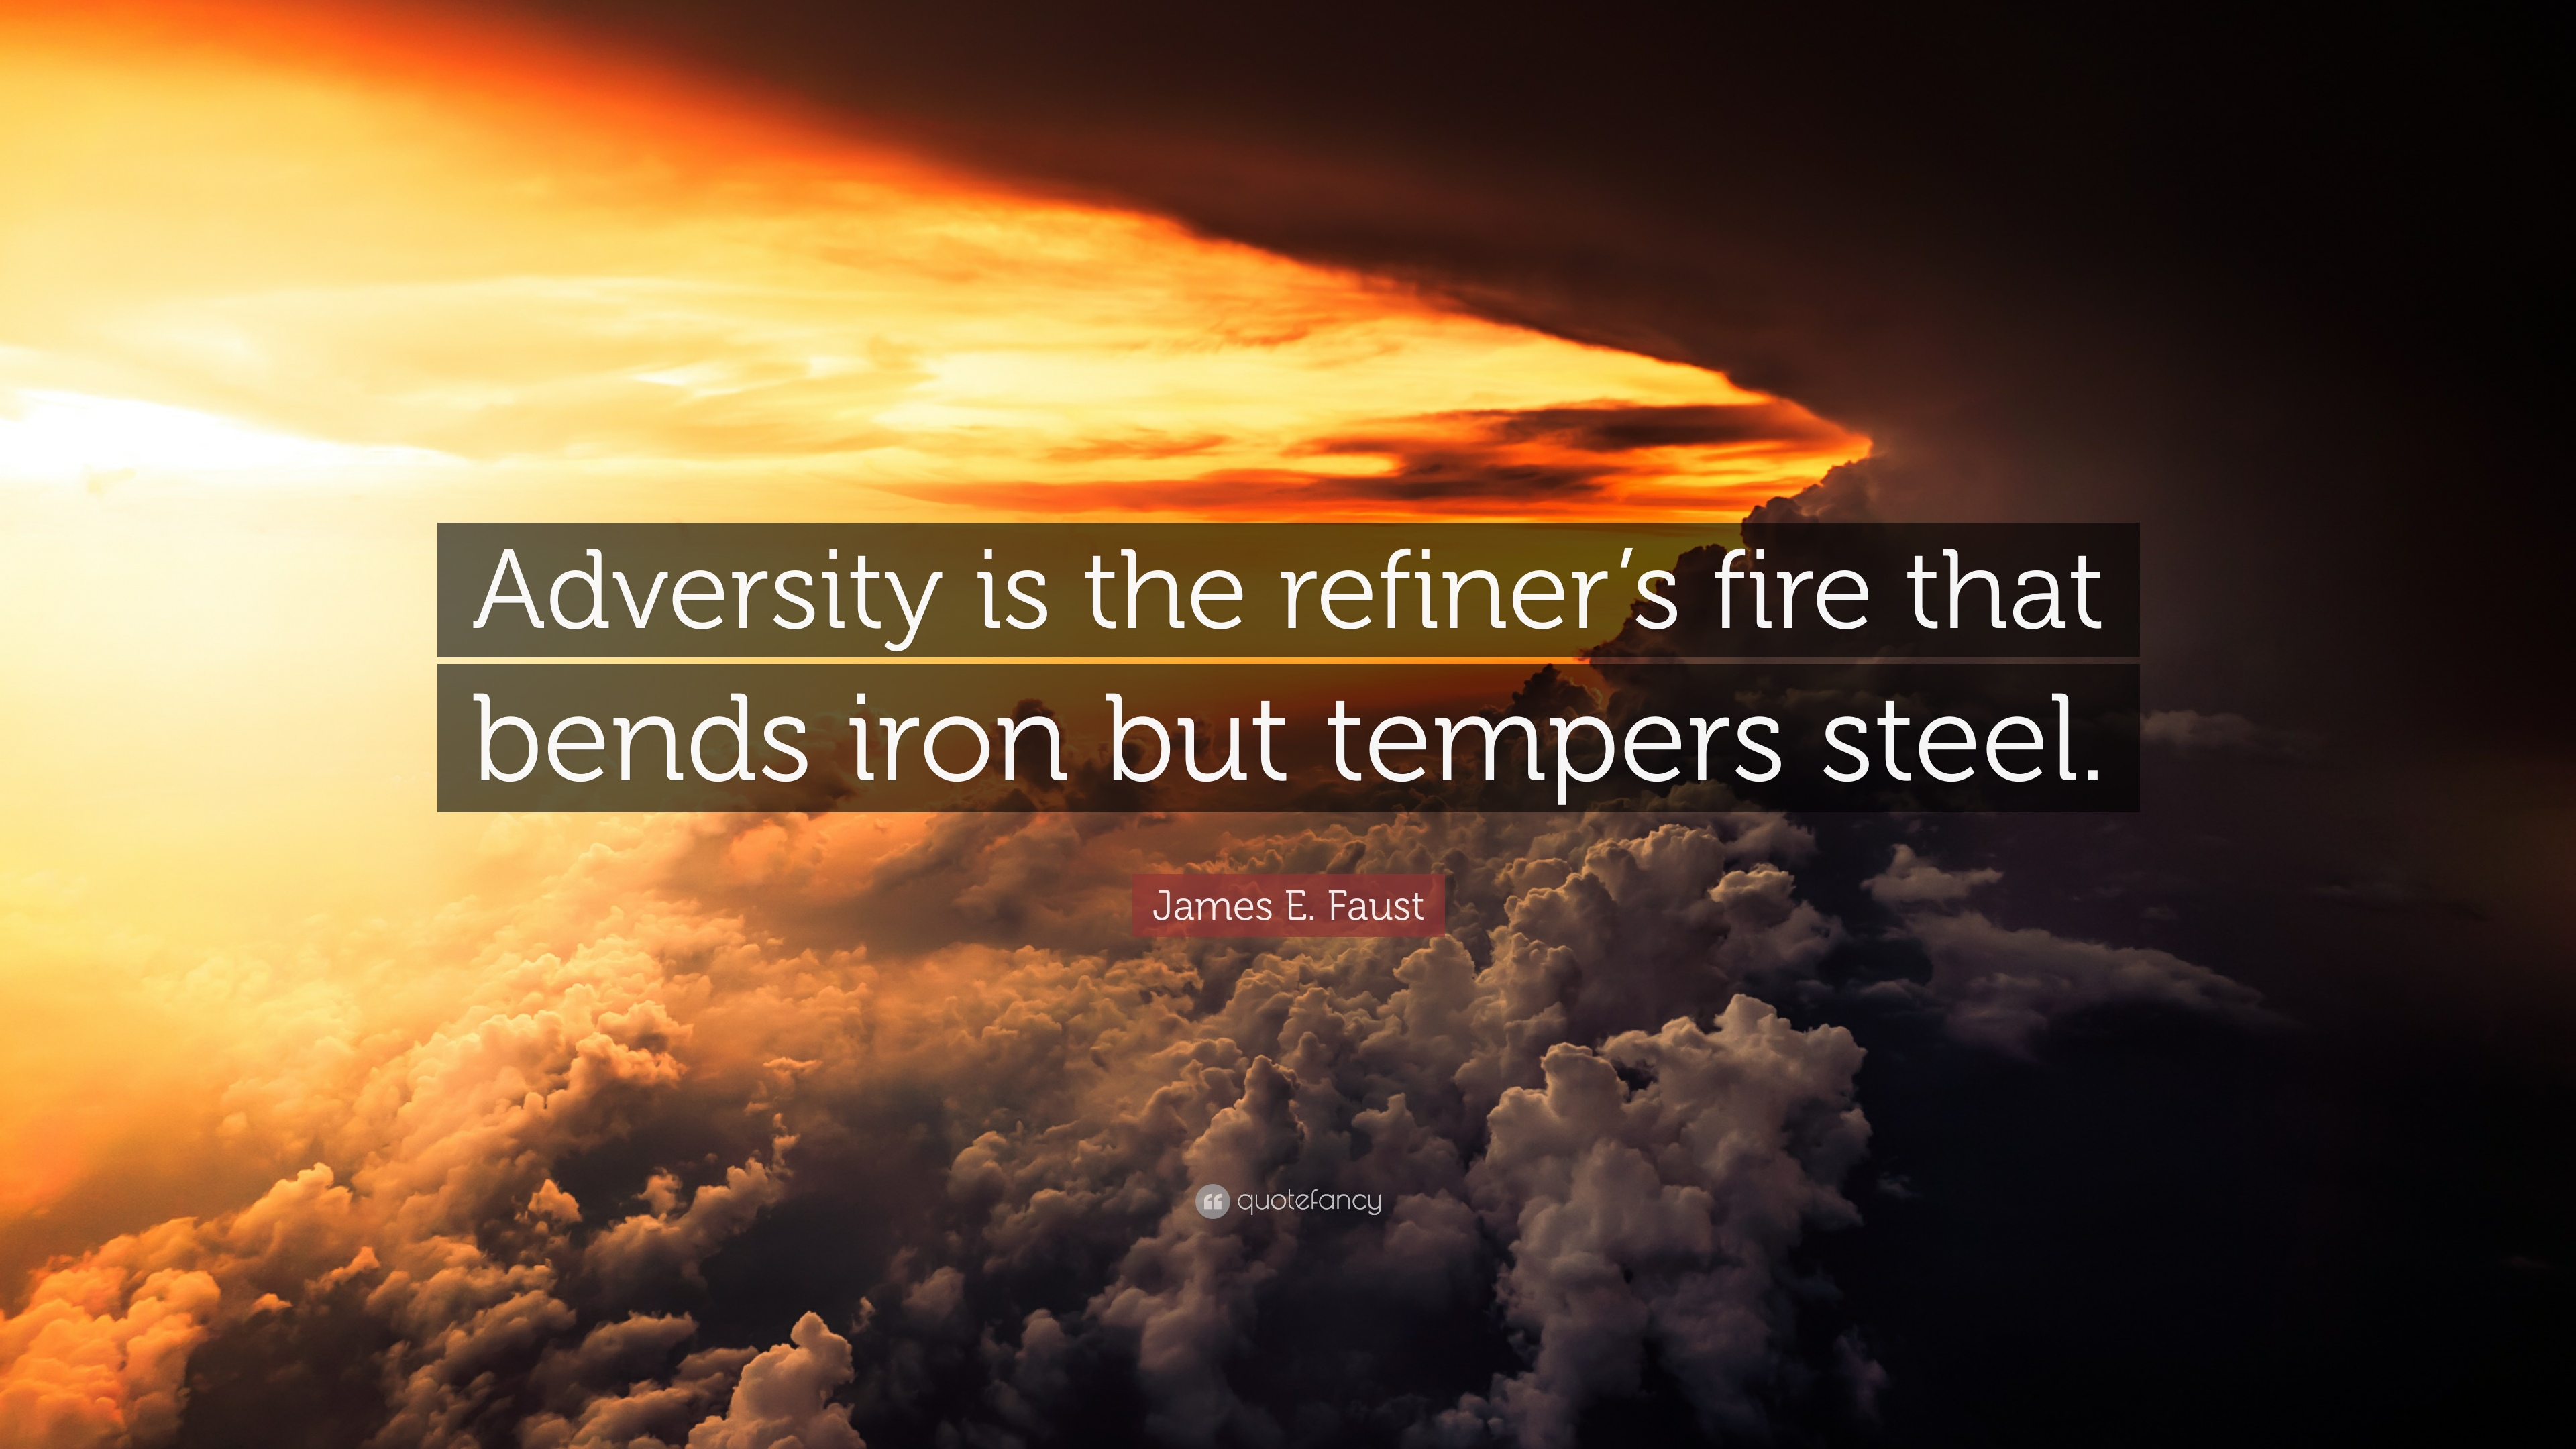 James E Faust Quote Adversity Is The Refiner S Fire That Bends Iron But Tempers Steel 10 Wallpapers Quotefancy